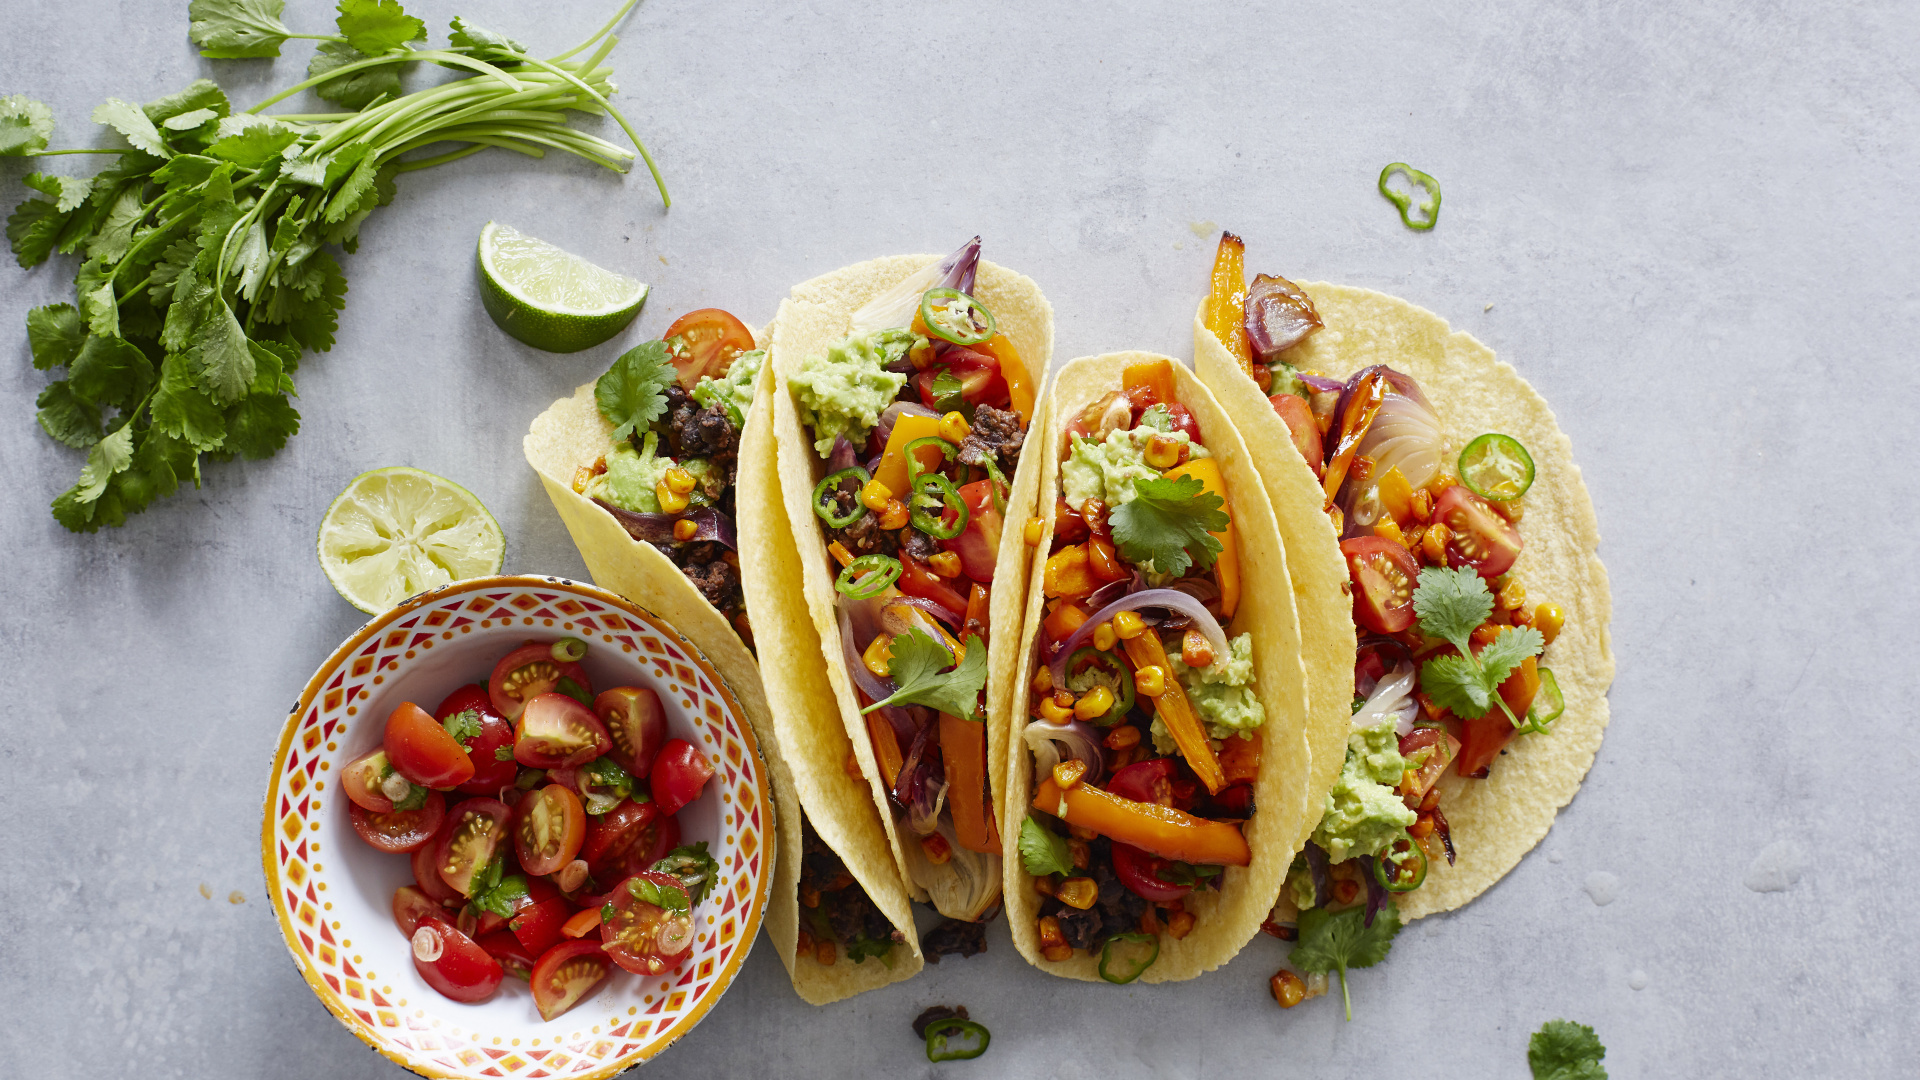 BOSH! Ultimate Vegan Taco Recipe: How to make vegan tacos at home